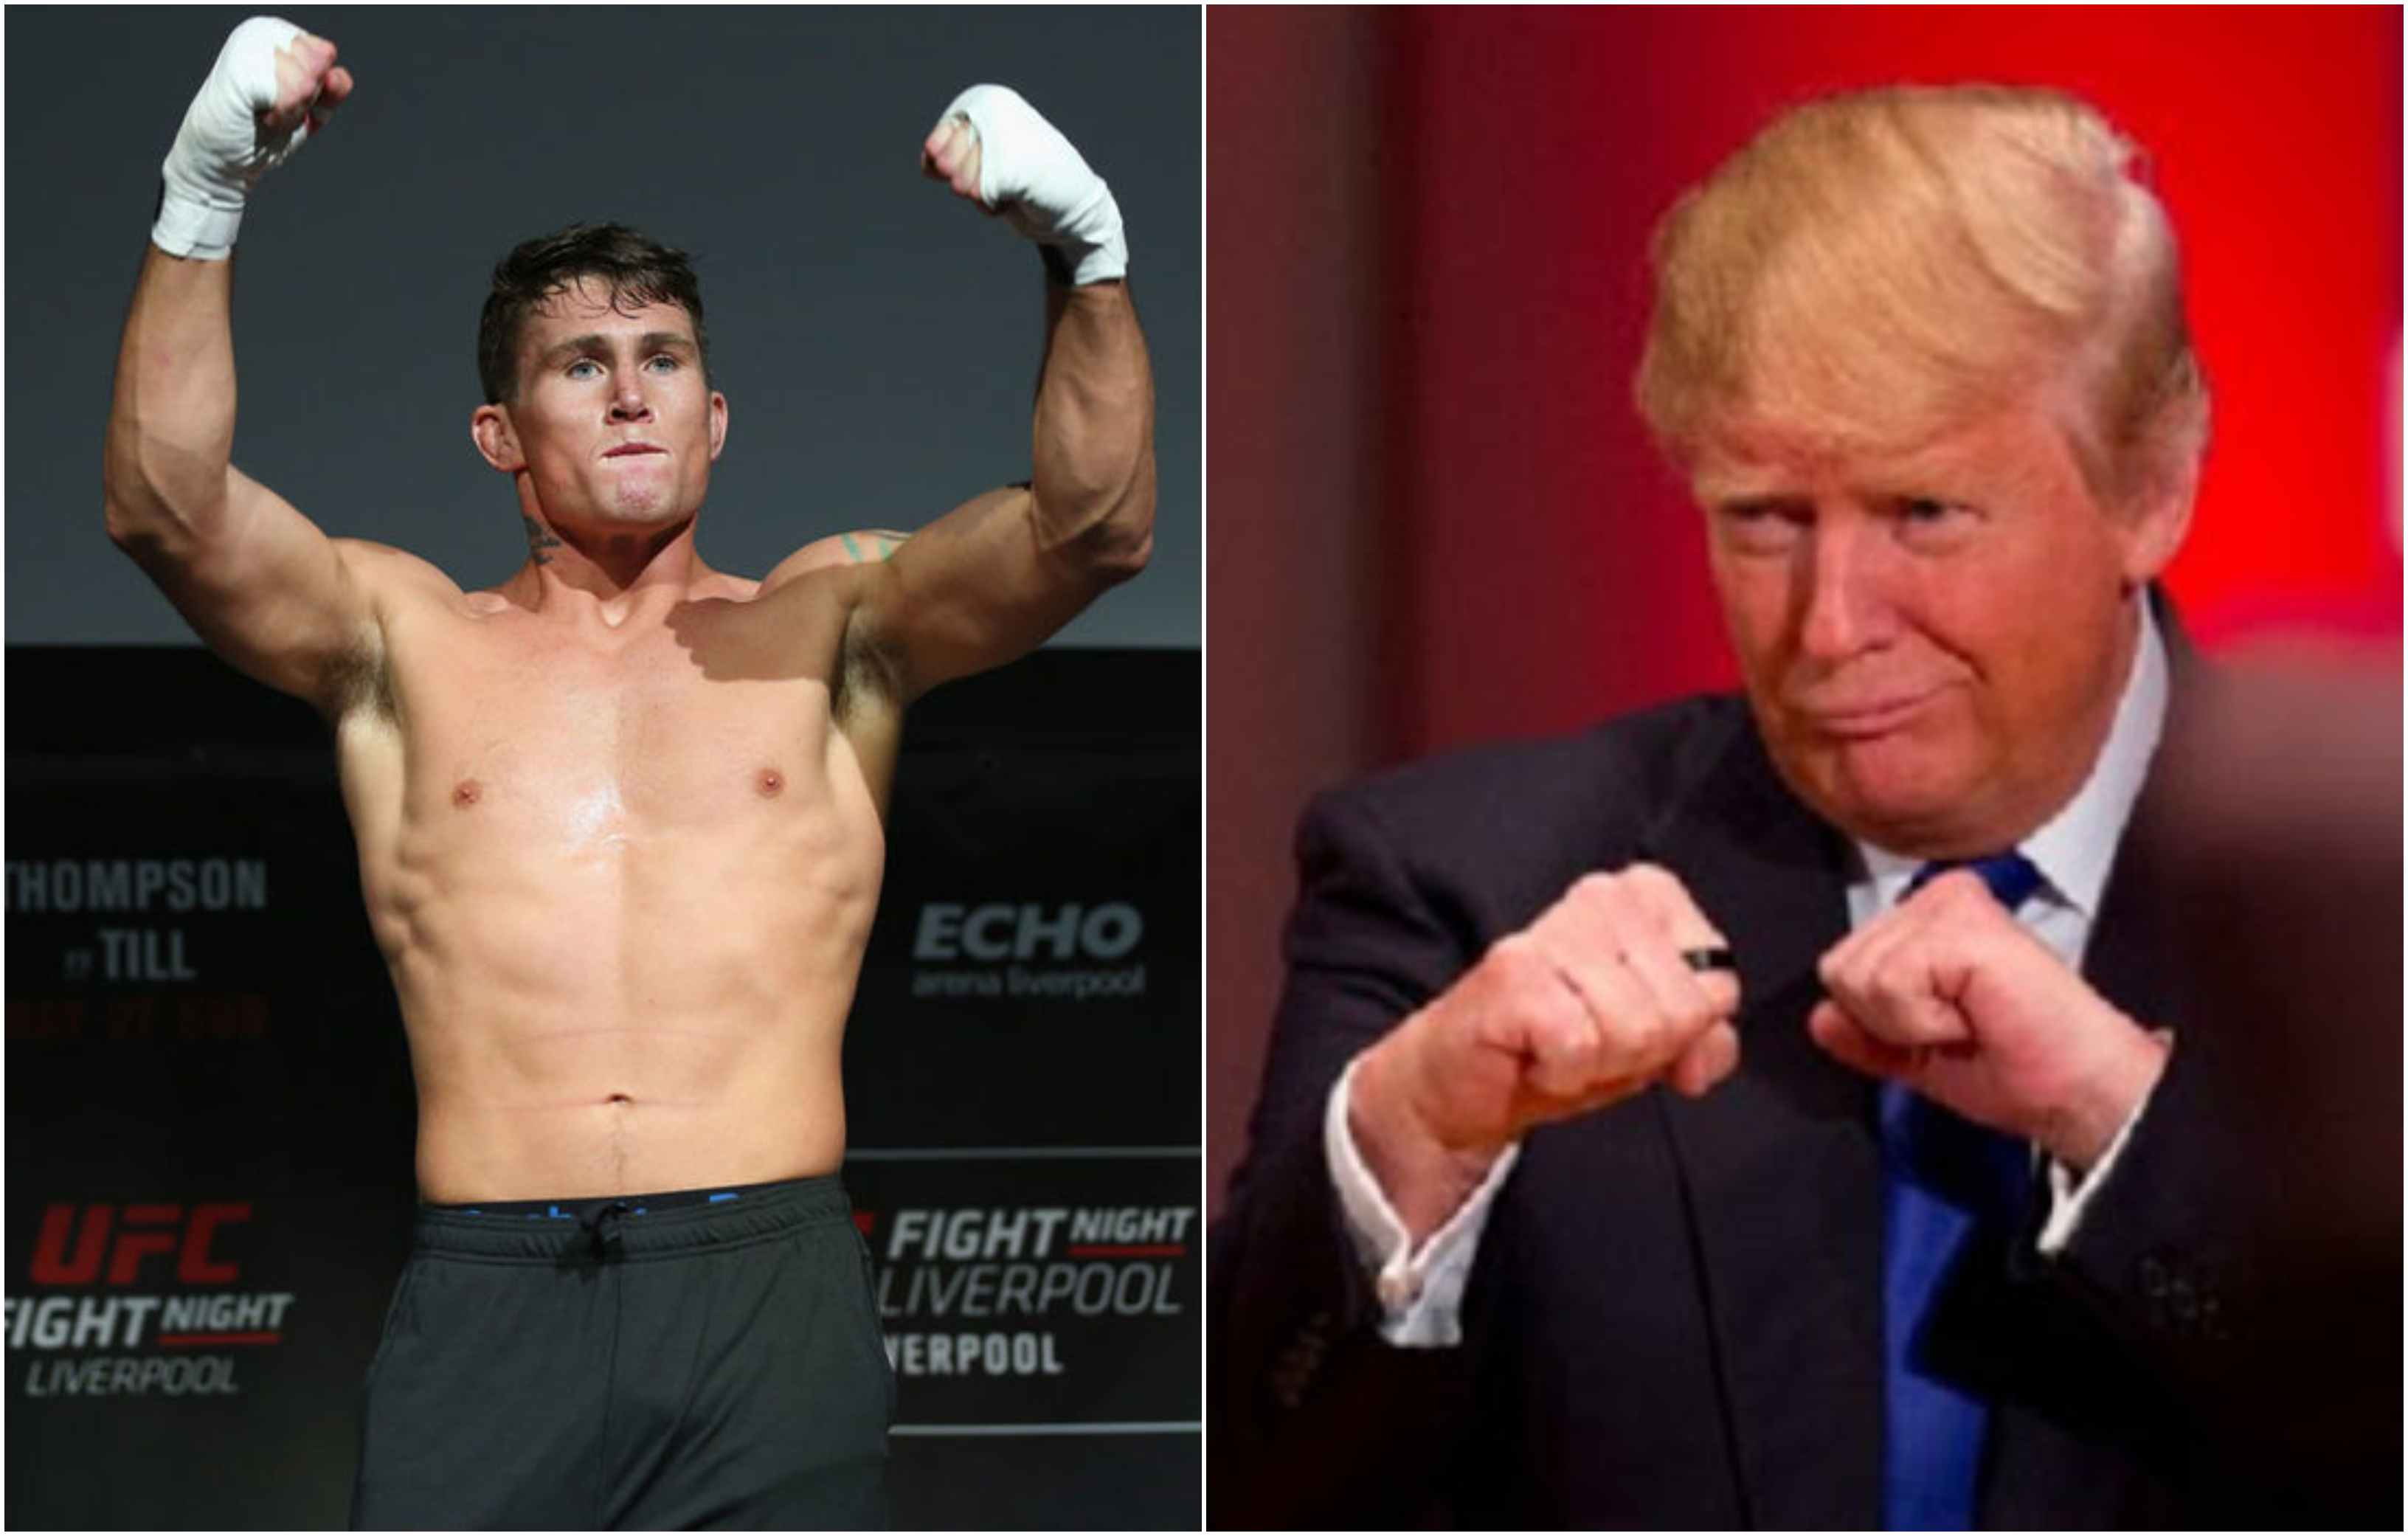 Darren Till claims he slid into Donald Trump's DMs to try and get a UFC 248 visa - Darren Till